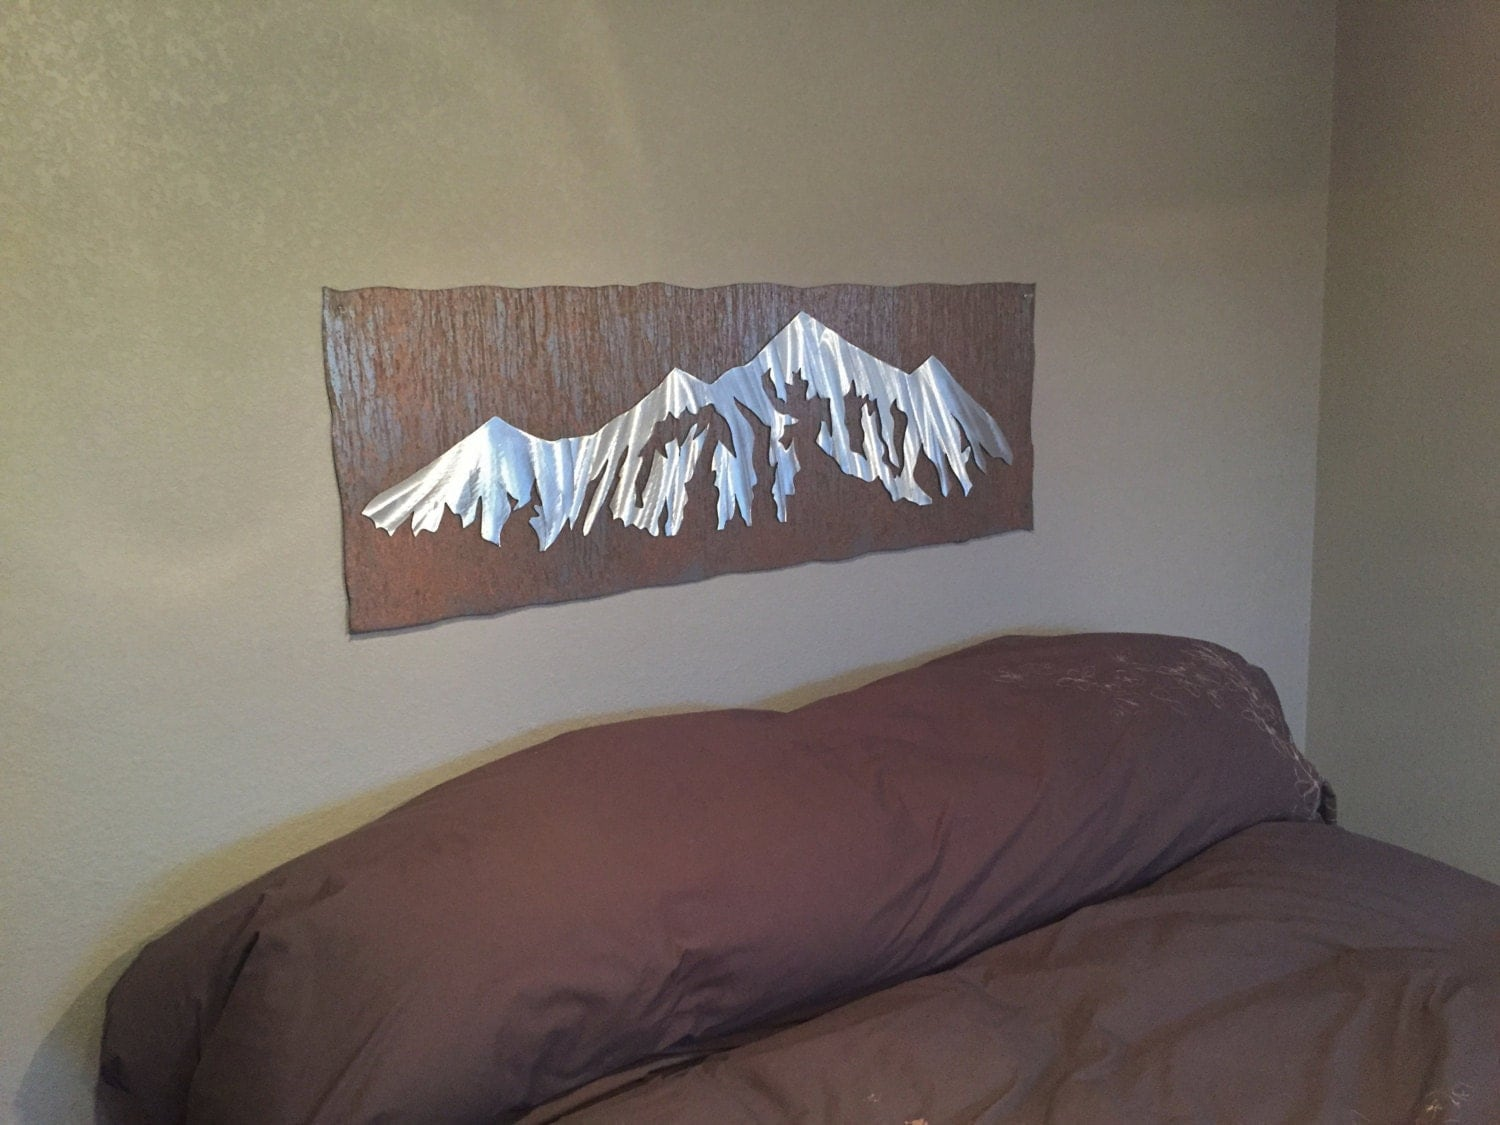 Mountain Artwork For Your Bedroom Bed Headboard Metal Wall